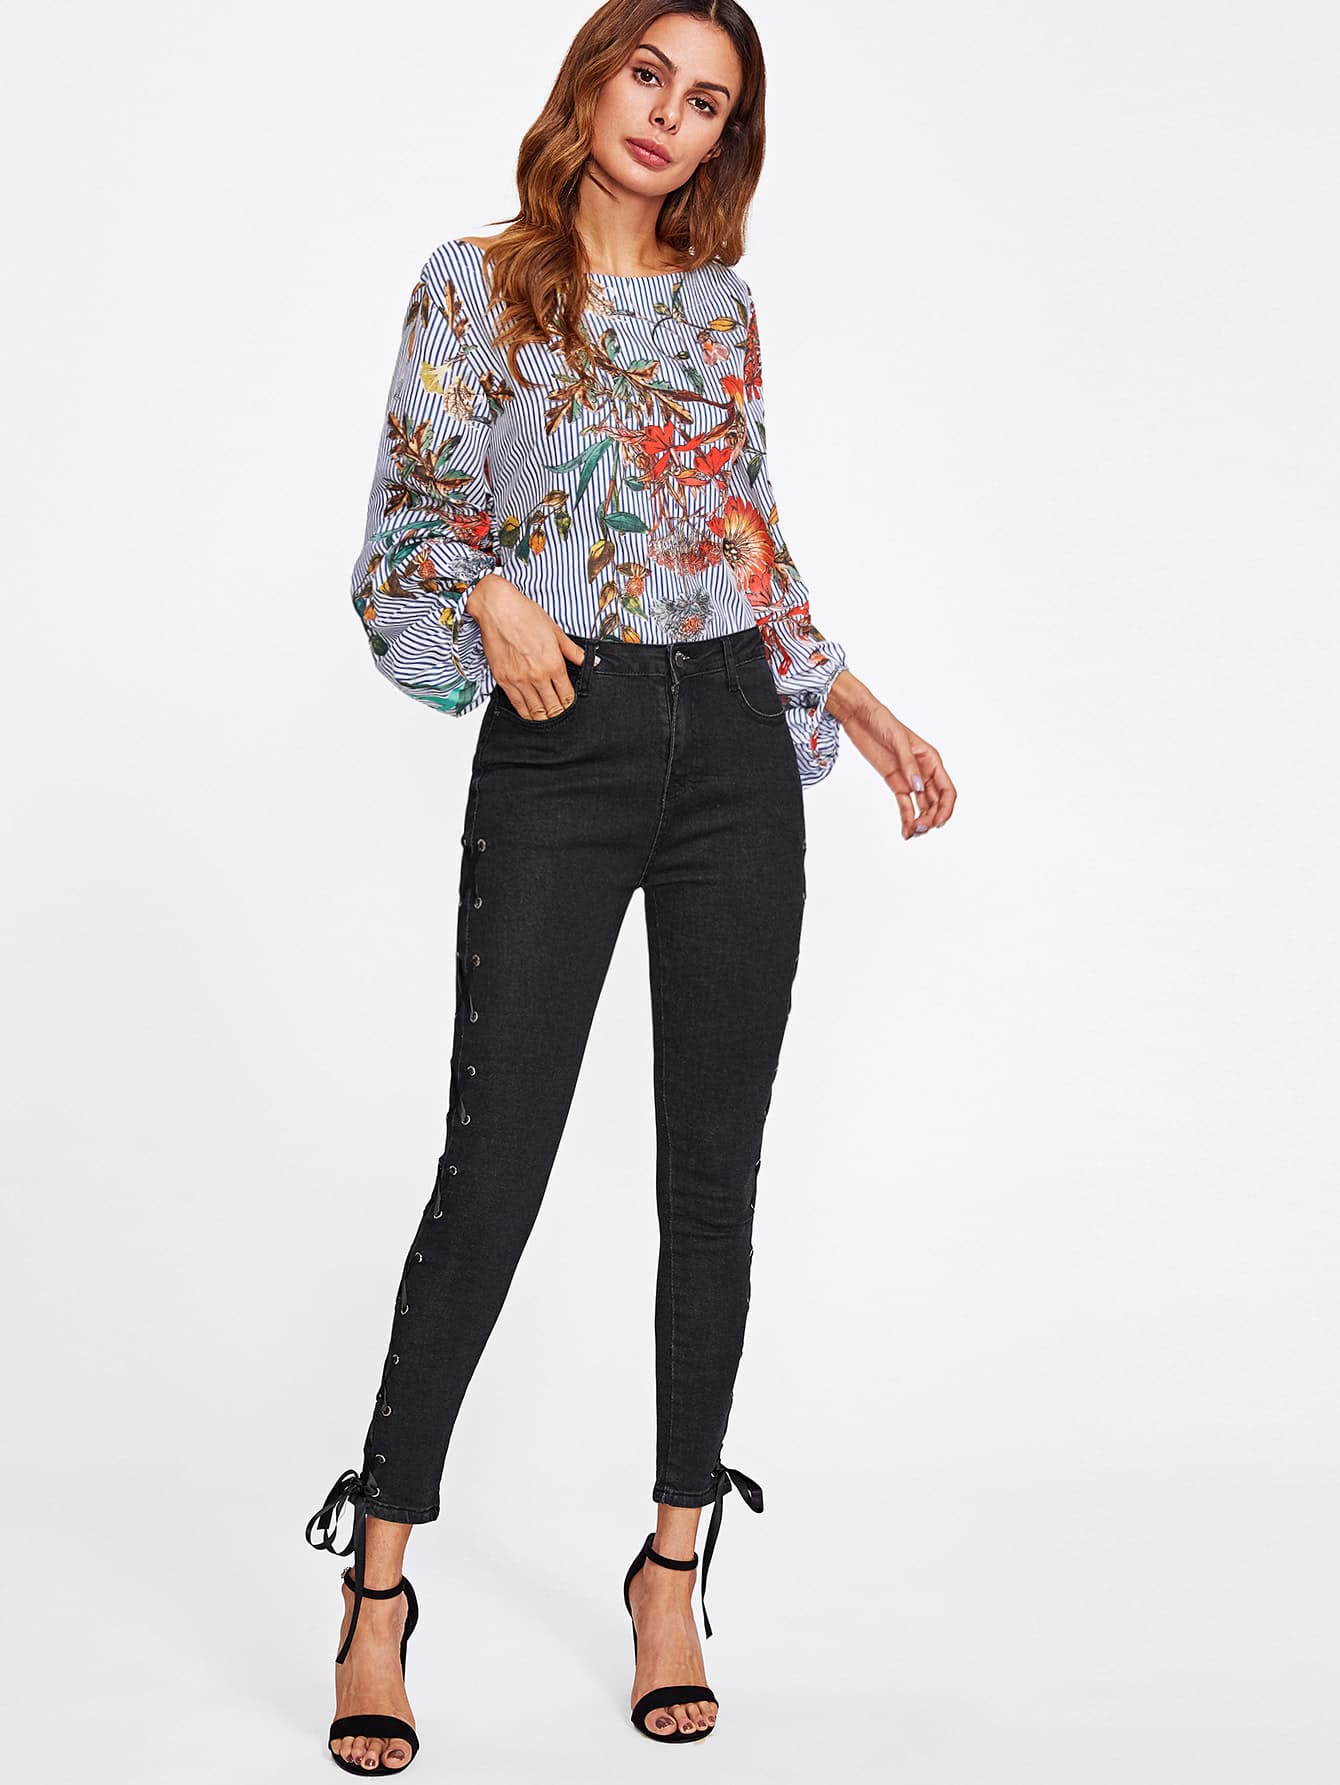 Grommet Lace Up Side Skinny Ankle Jeans